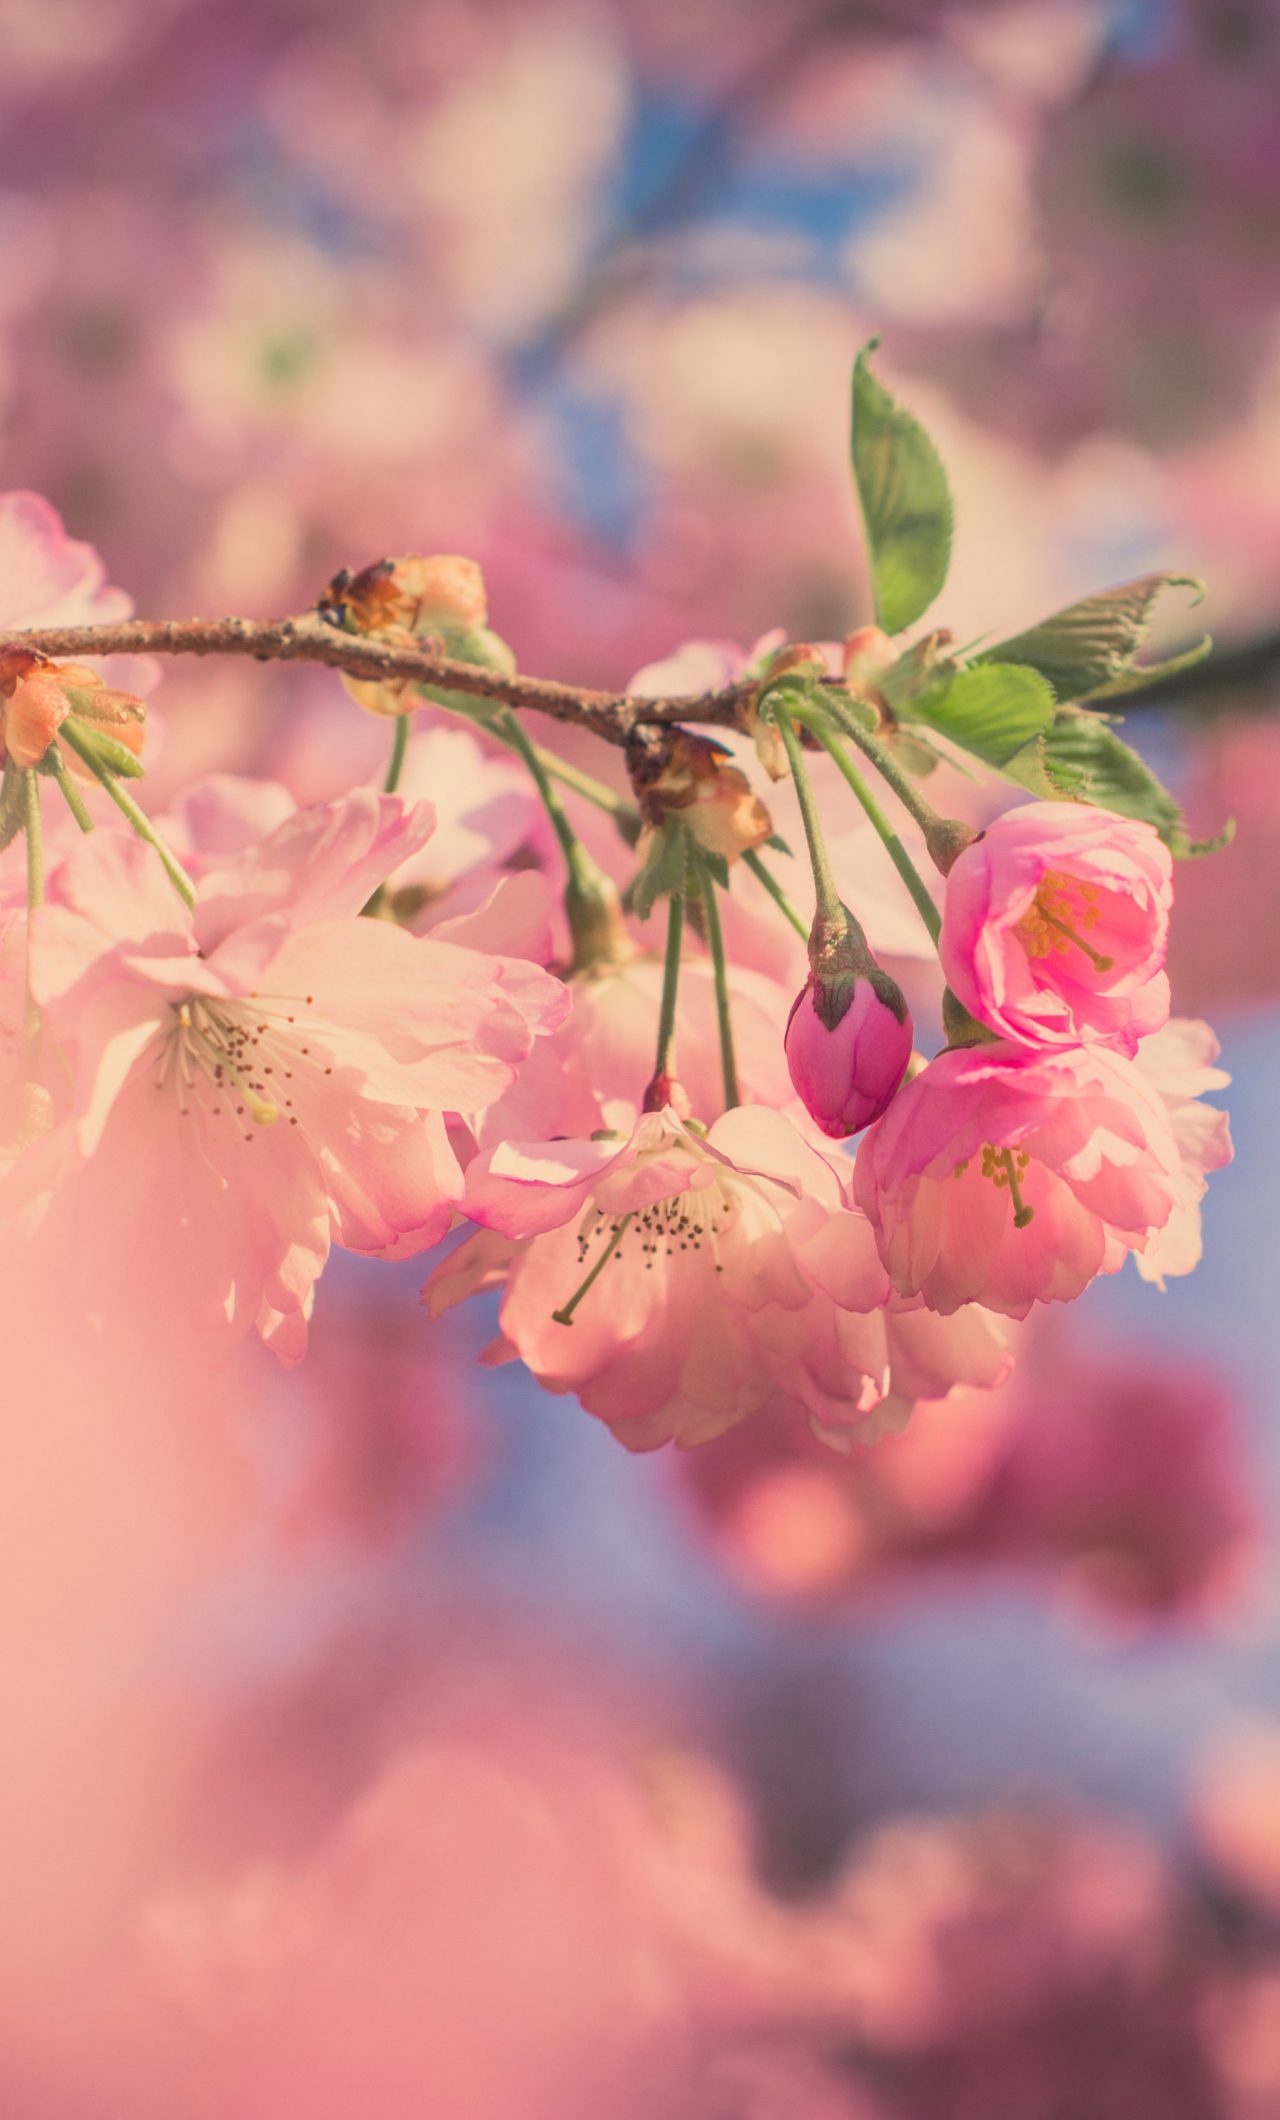 Download 1280x2120 Wallpaper Pink Flowers Cherry Blossom Spring Blur Iphone 6 Plus 1280x2120 Hd Image Background 3149